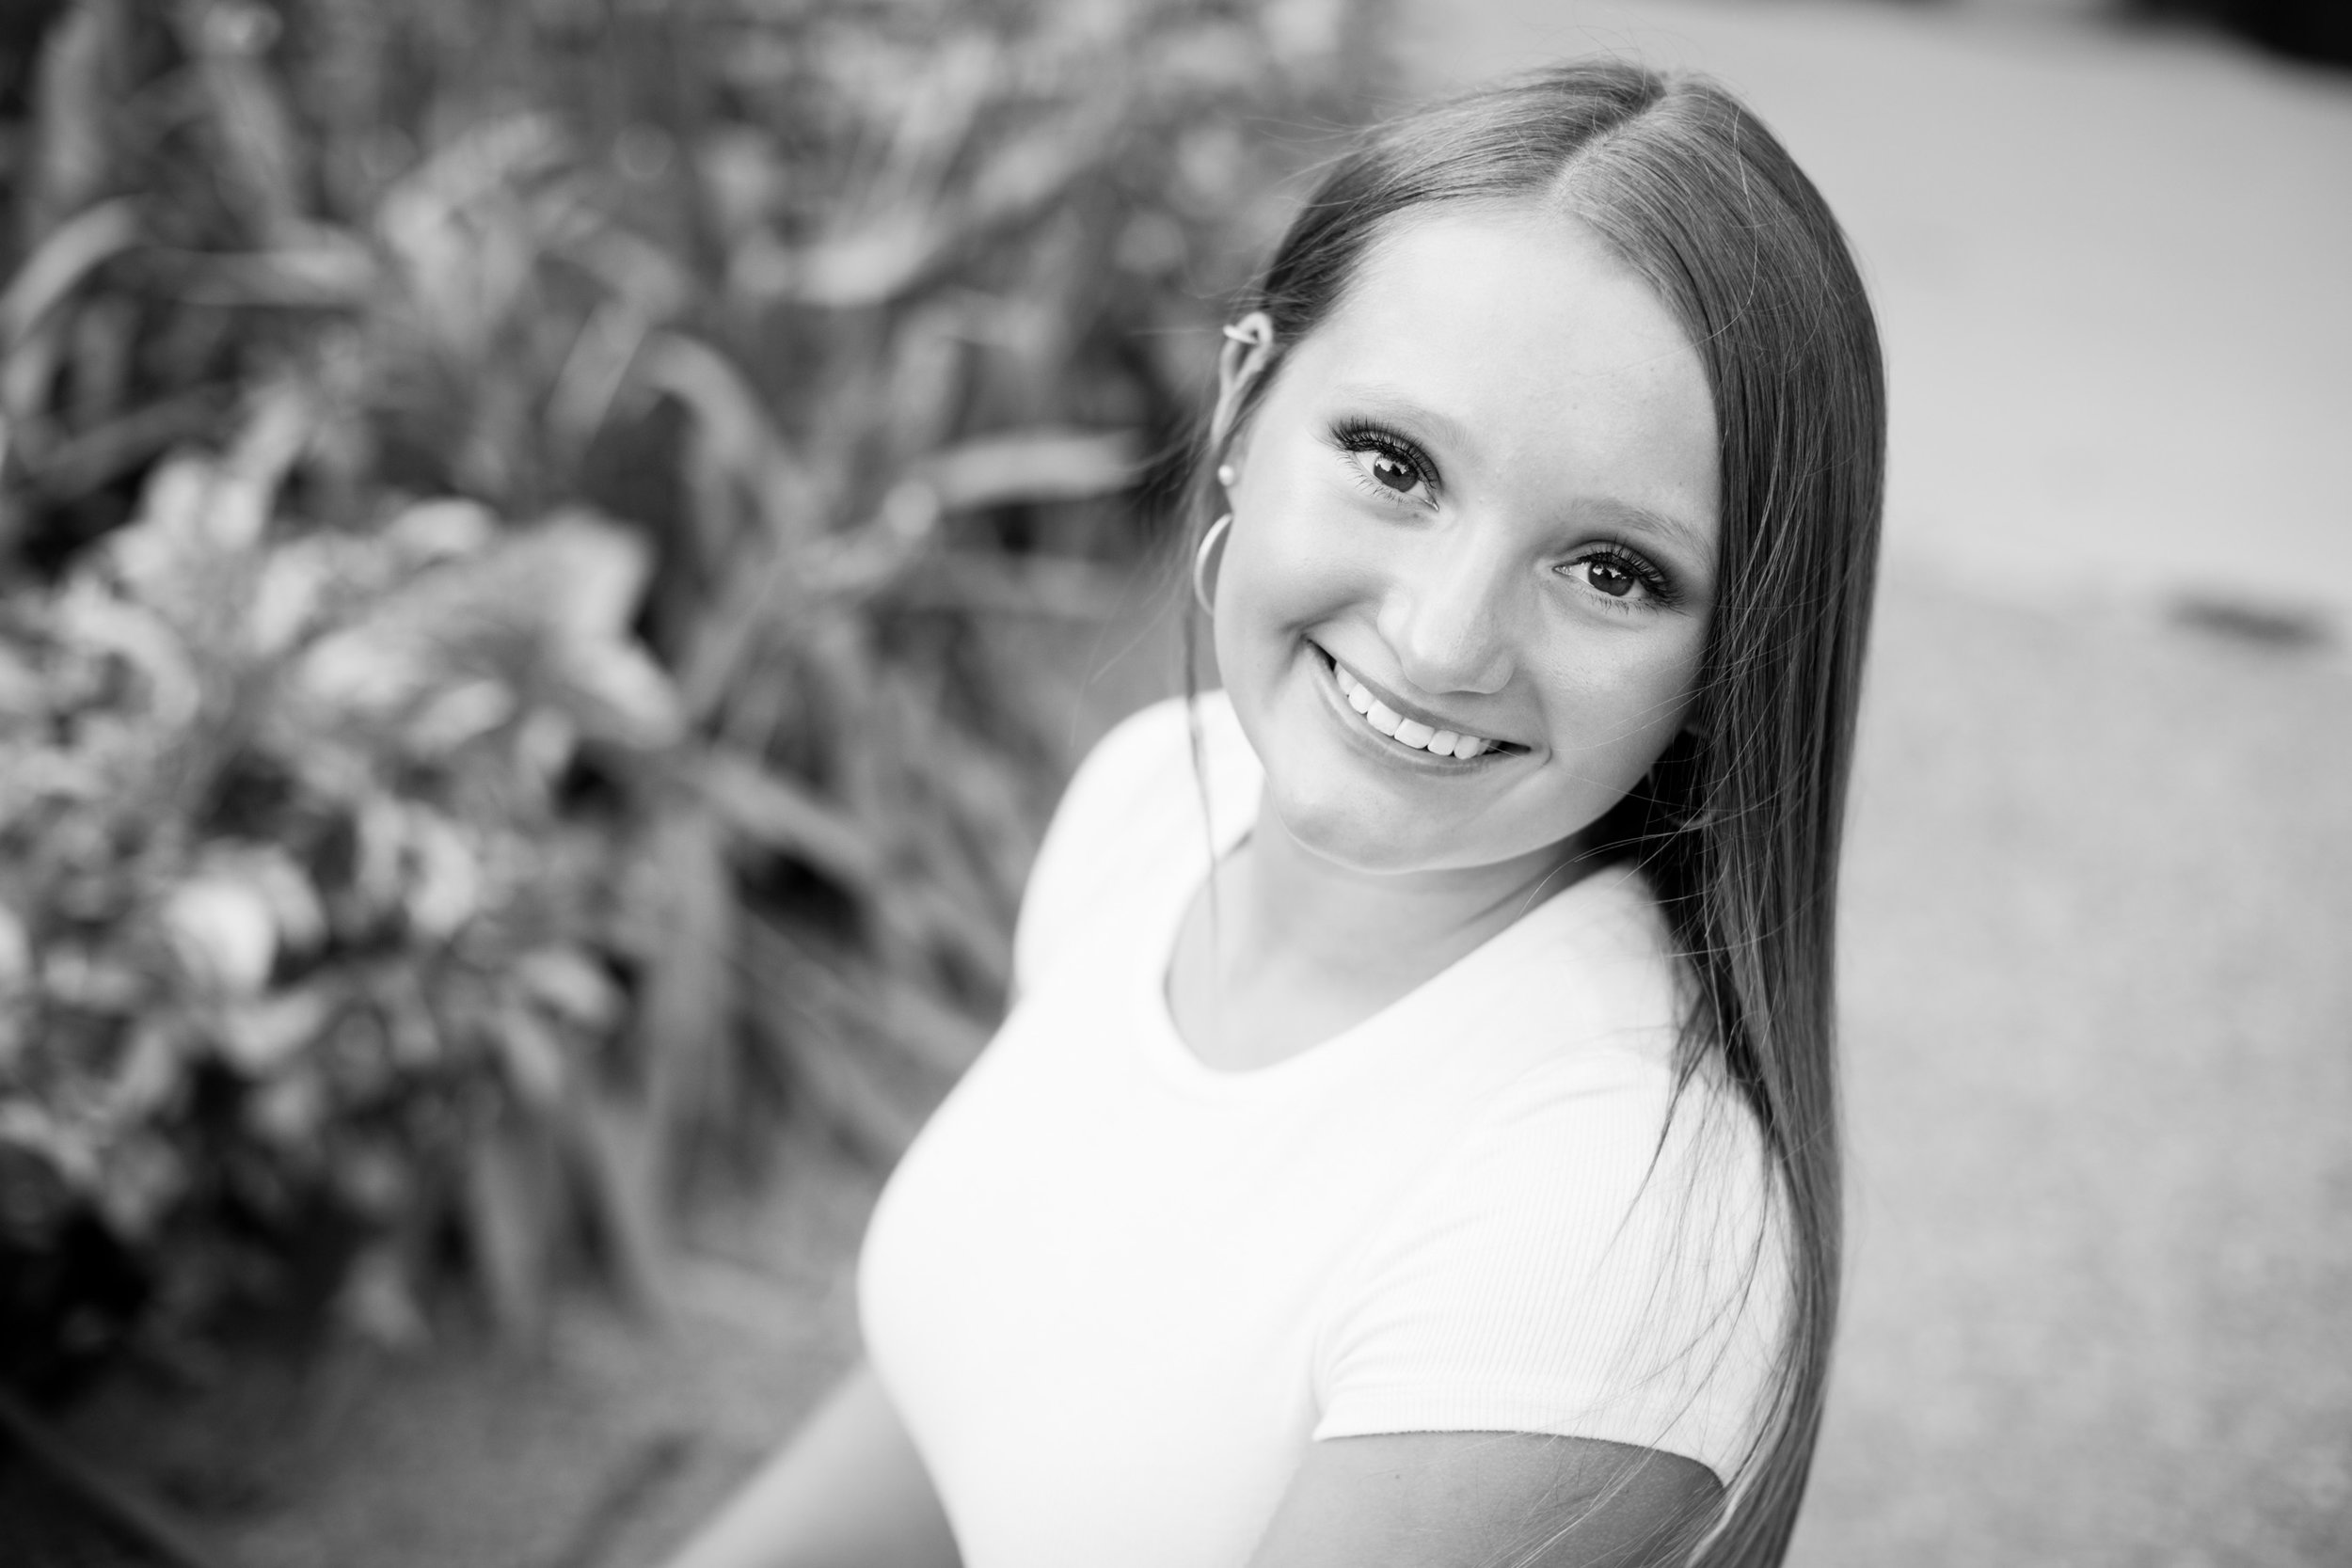 amelia renee is a senior portrait photographer in des moines iowa